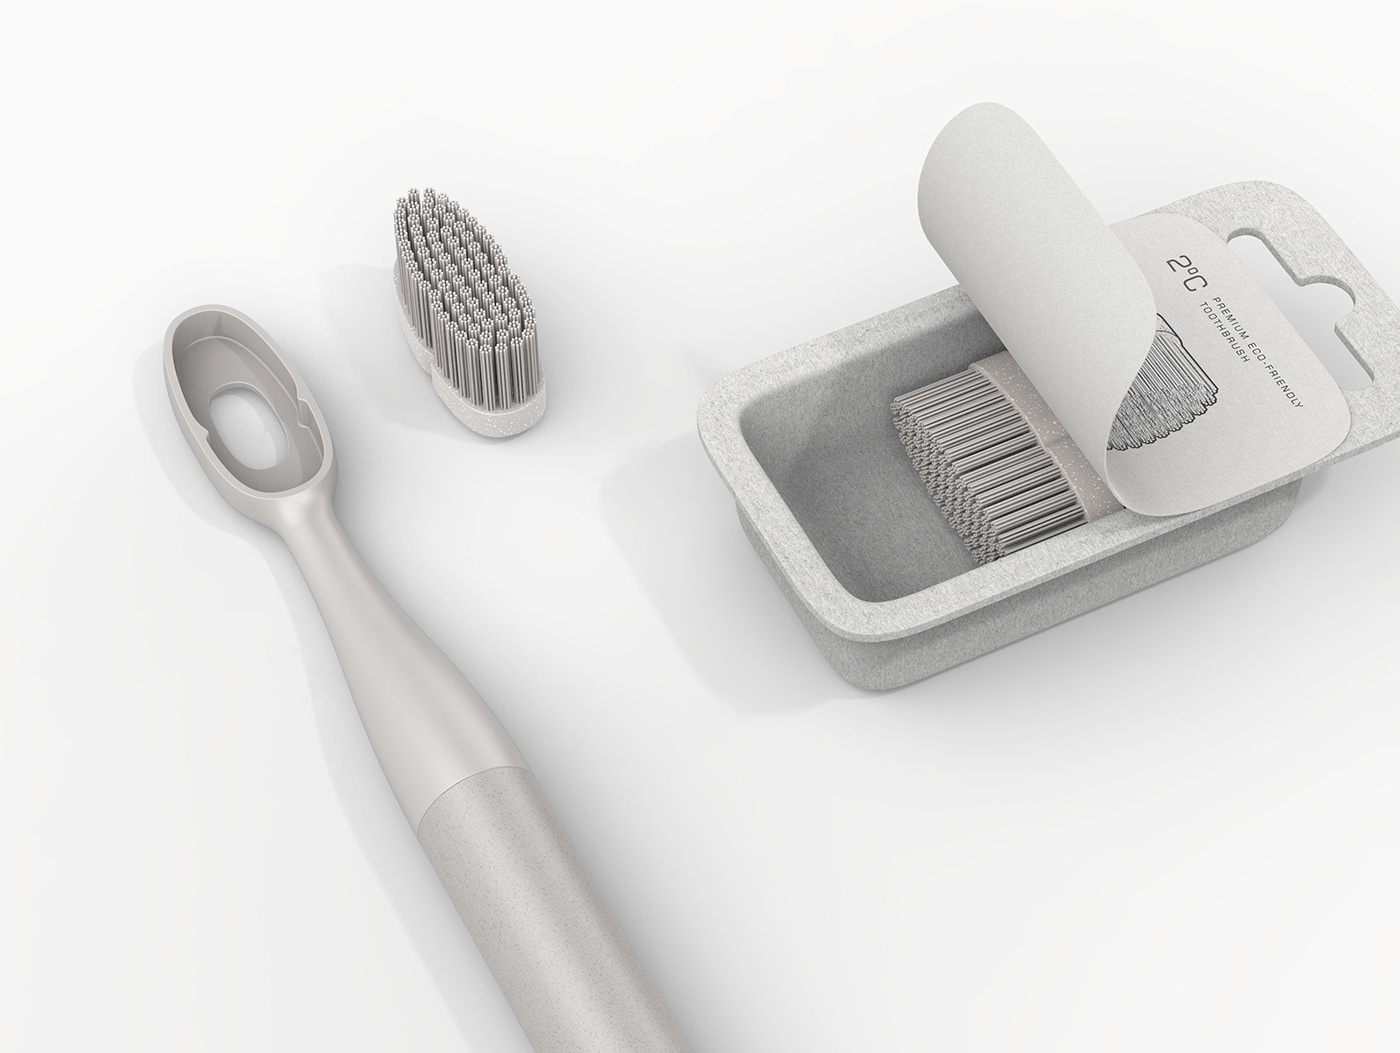 toothbrush eco-friendly Sustainable plastic waste premium global warming Smart pulp carton Magnetic